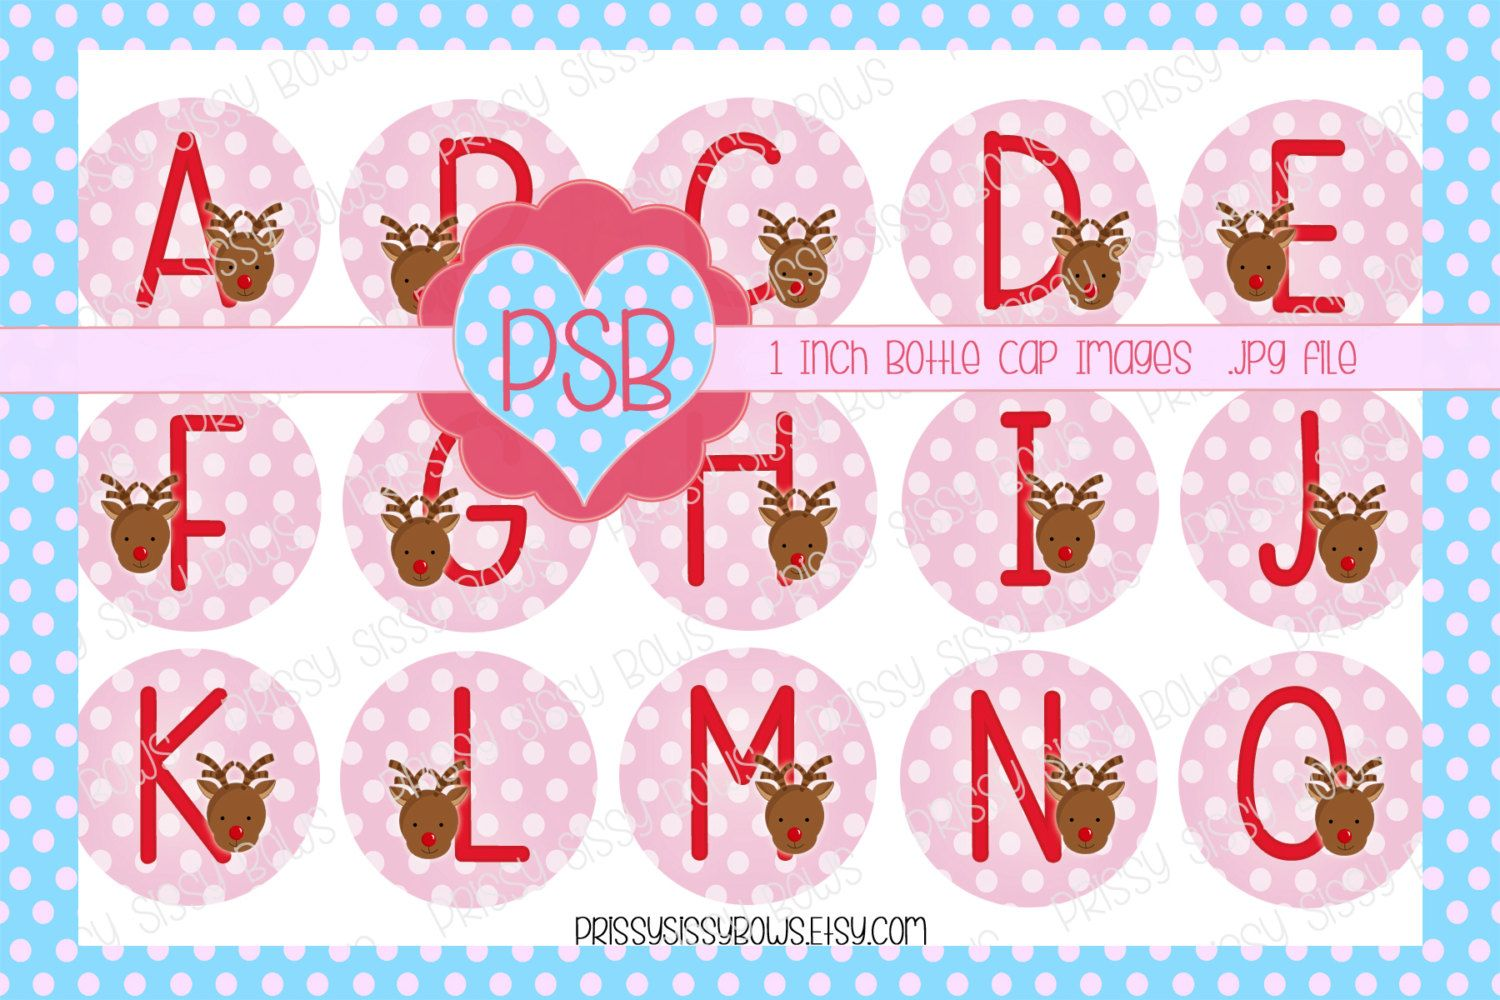 Christmas Reindeer Pink Alphabet 1 Inch Bottle Cap Images - Digital Download - pinned by pin4etsy.com